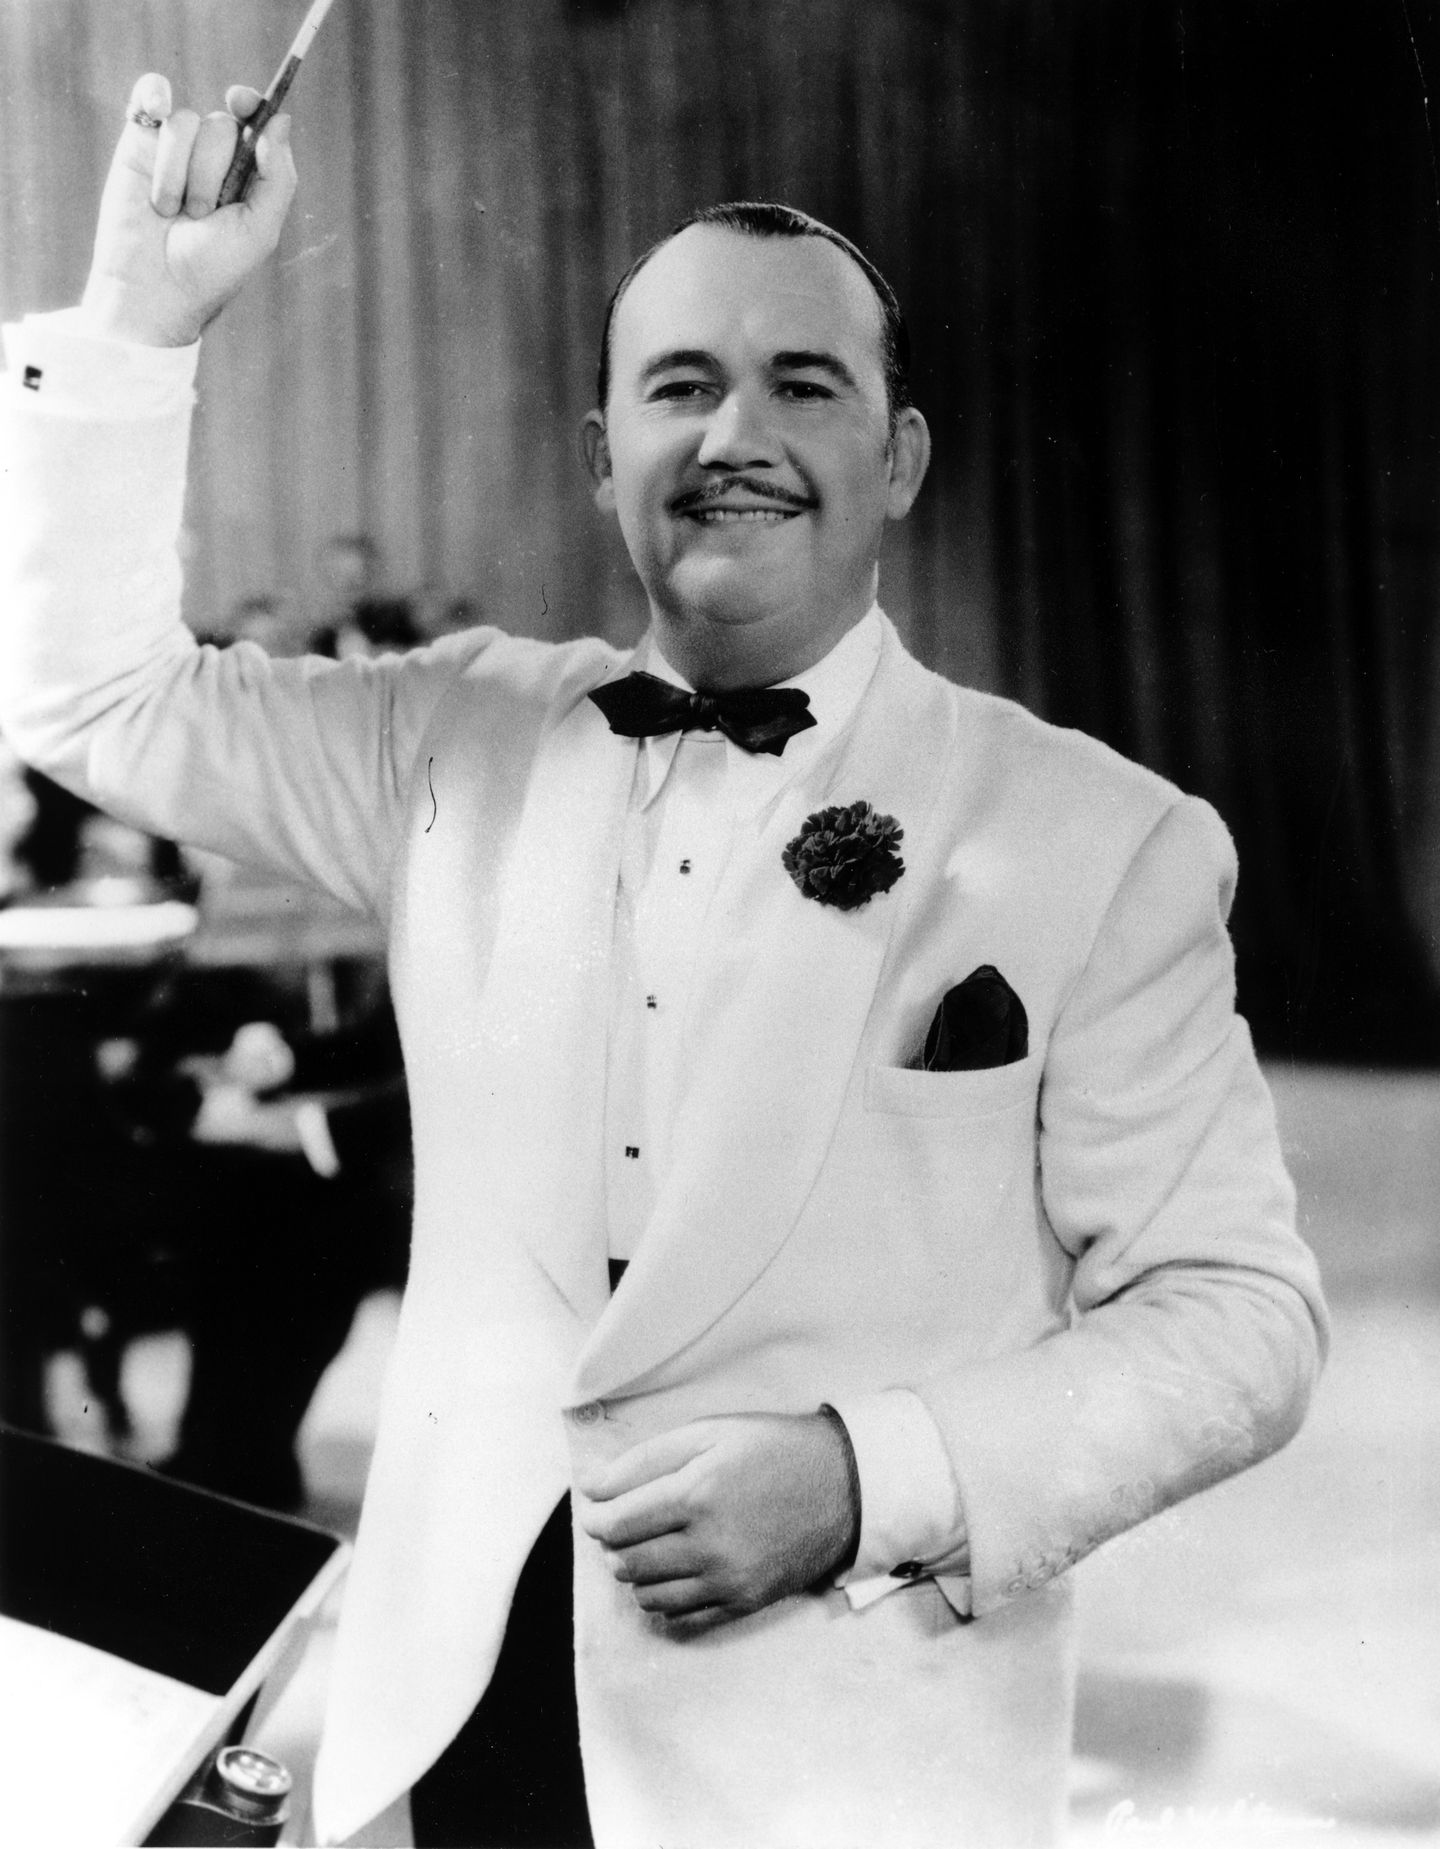 paul whiteman, considered the king of jazz by some, and hated by others